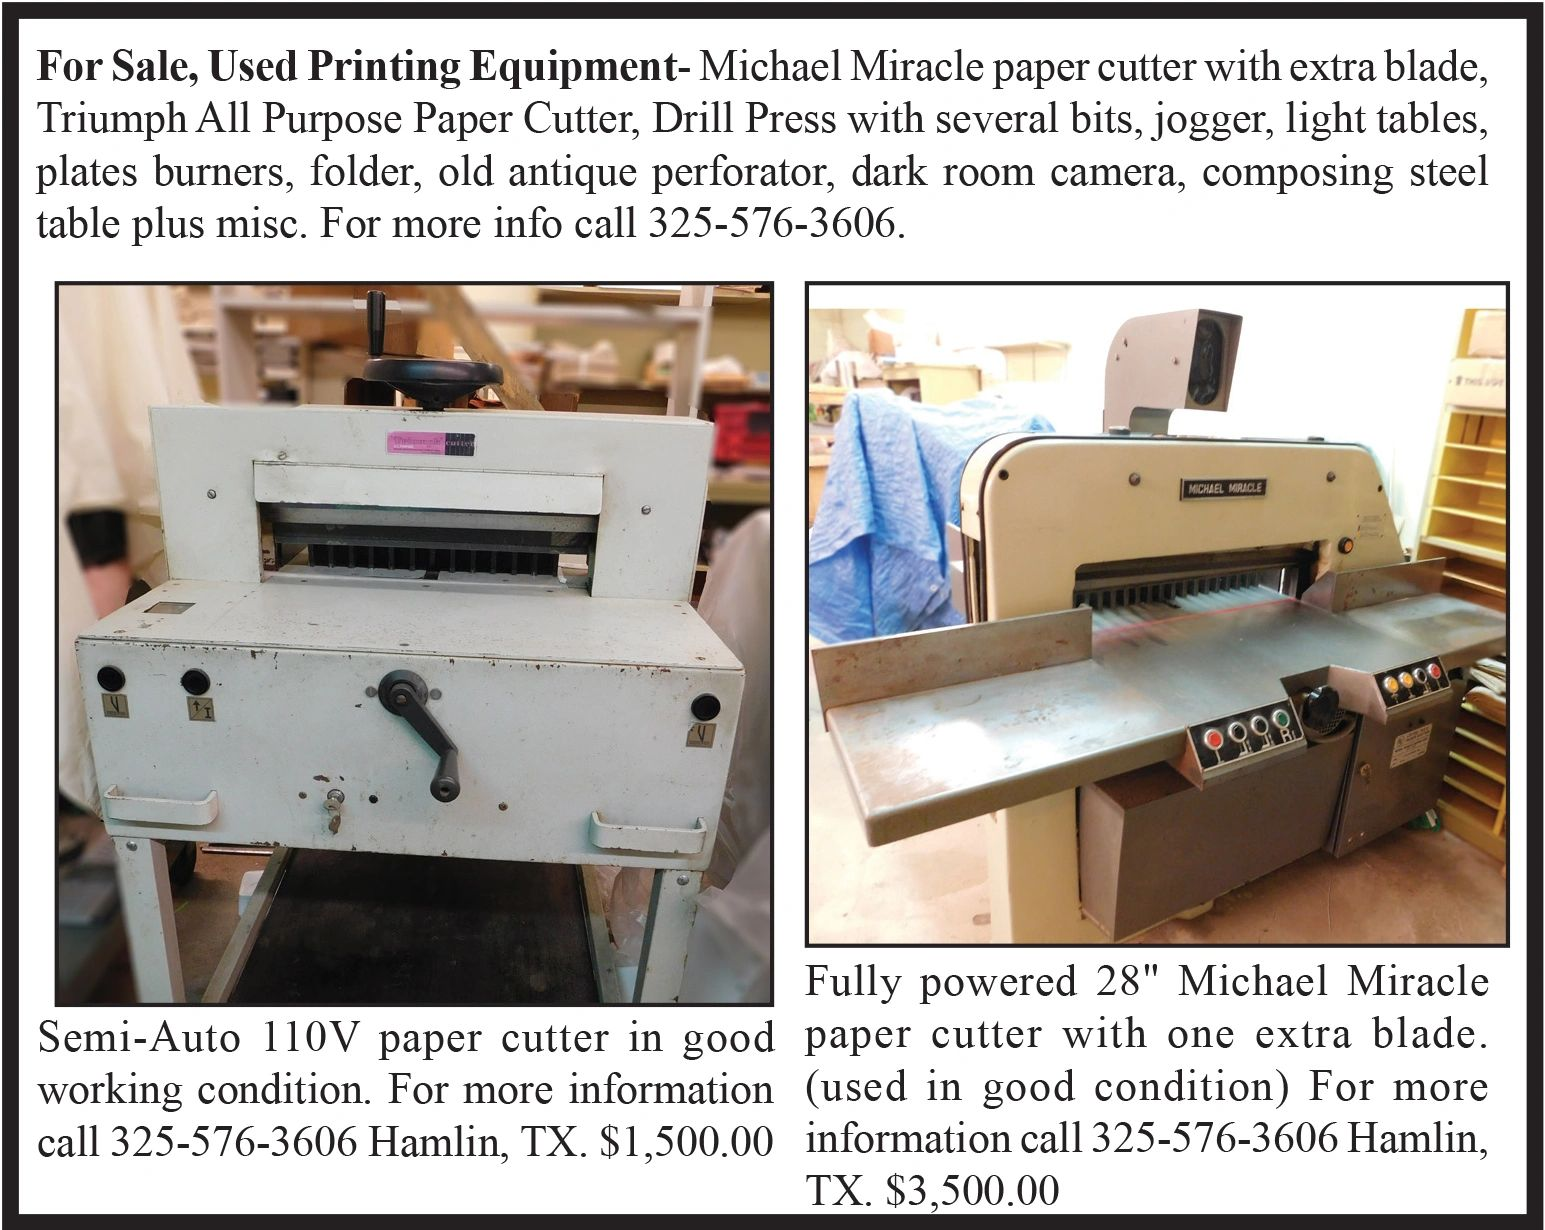 Used Printing Equipment for Sale